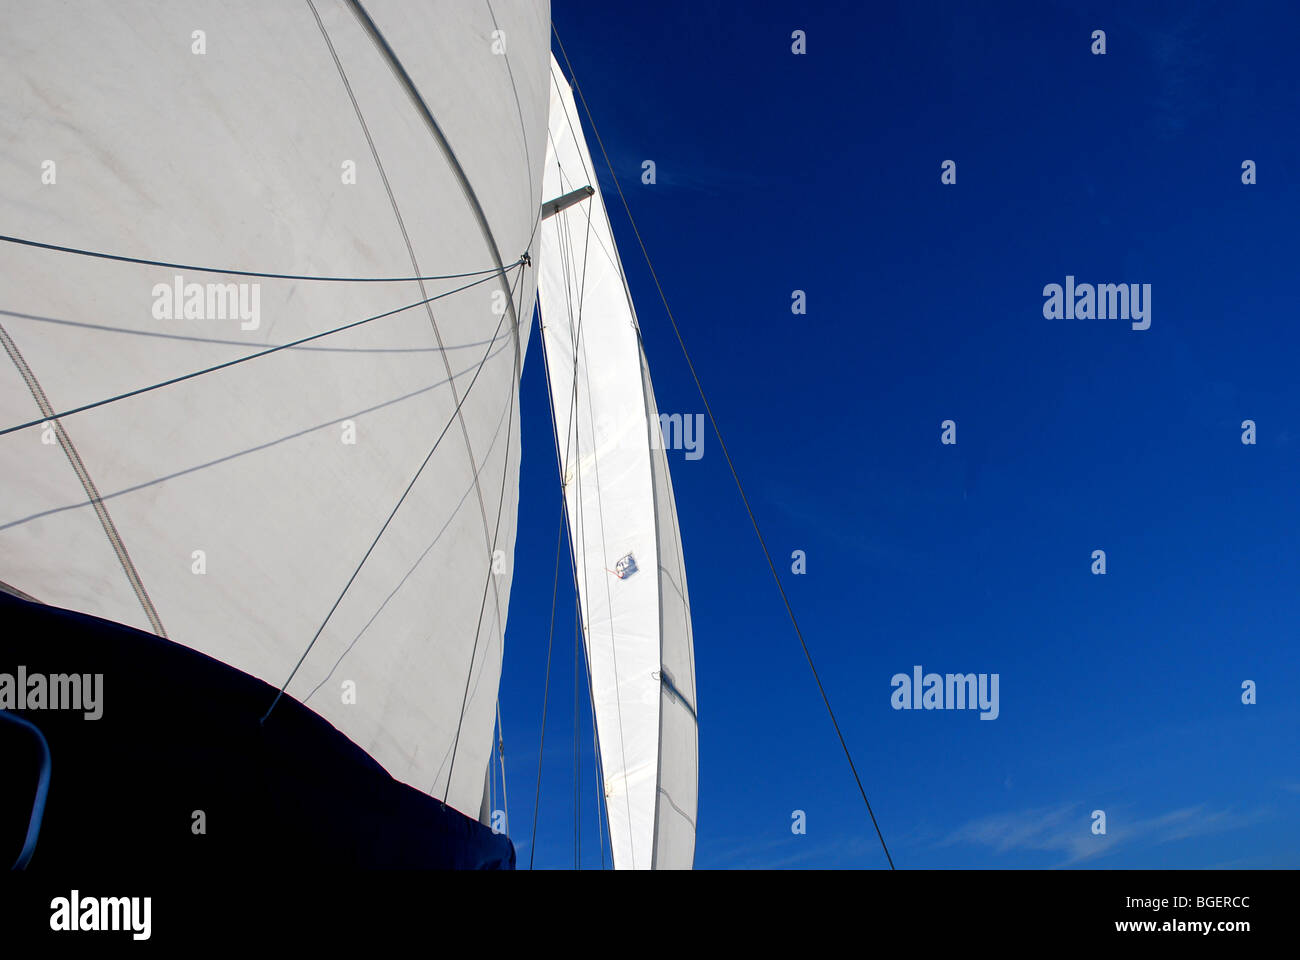 Sails up on Gulf of Mexico, USA, 2010 - Stock Image